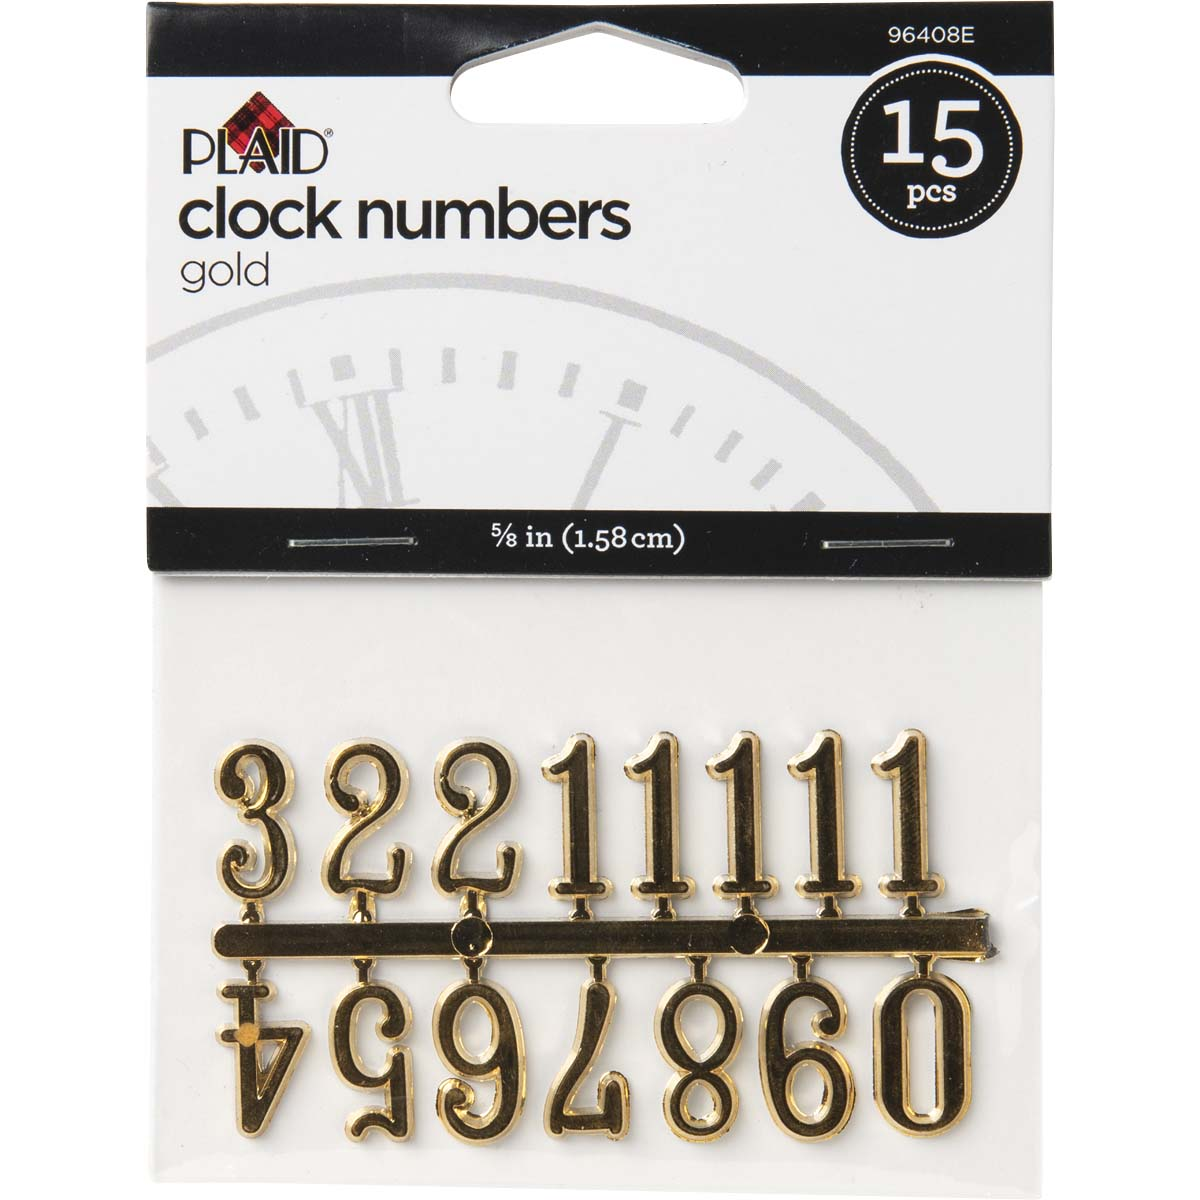 Plaid ® Accessories - Clock Numbers - Gold, 5/8